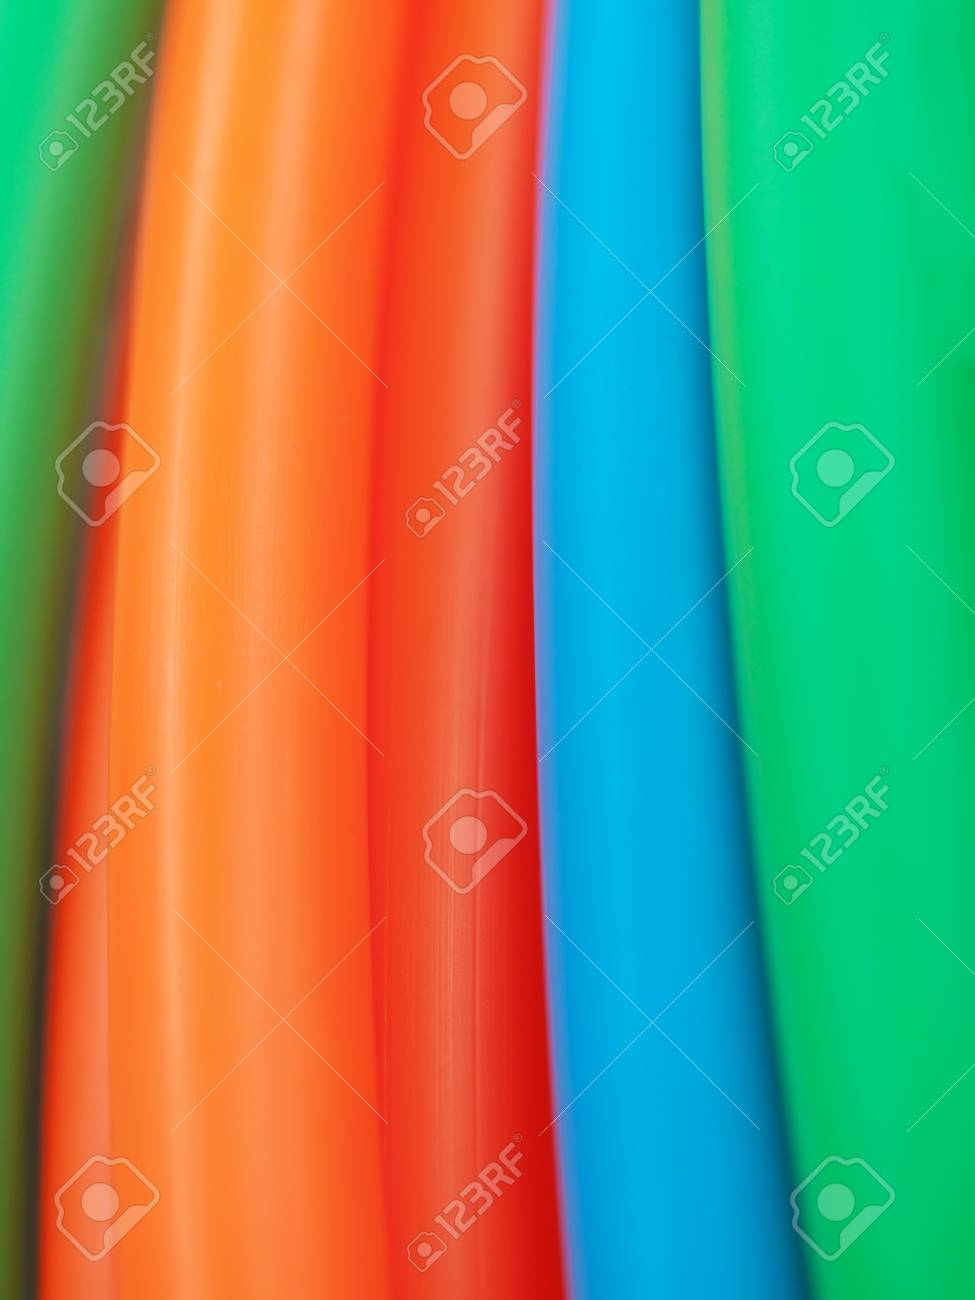 Colorful background Stock Photo - 8776115